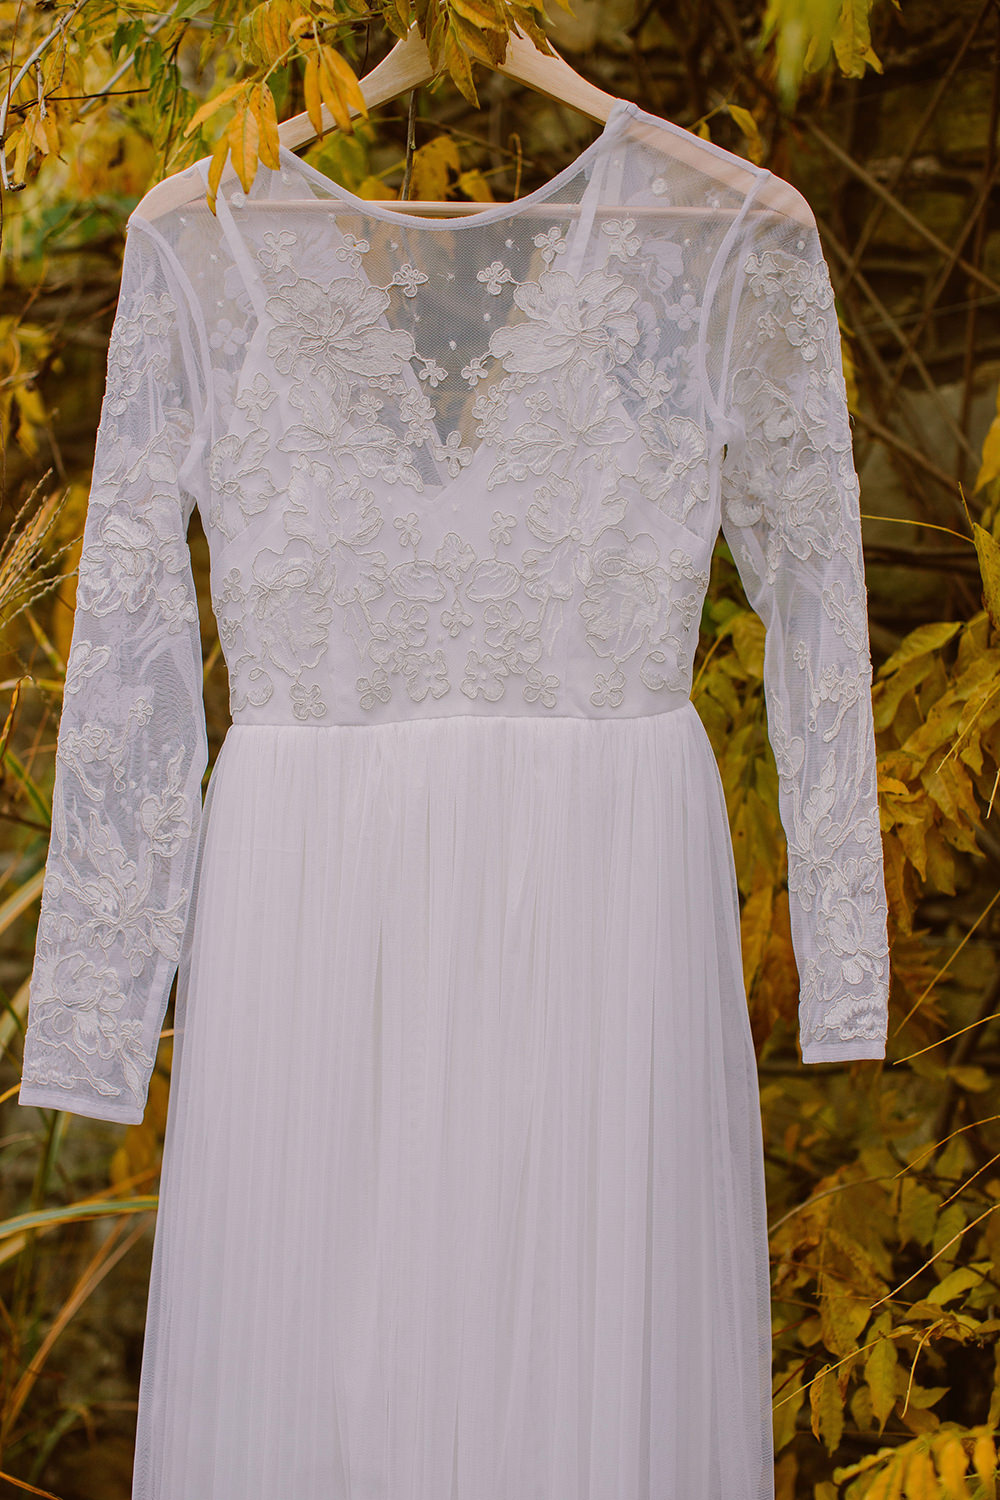 Dress Gown Bride Bridal Lace Sleeves Outdoor Autumn Wedding Ruby Walker Photography